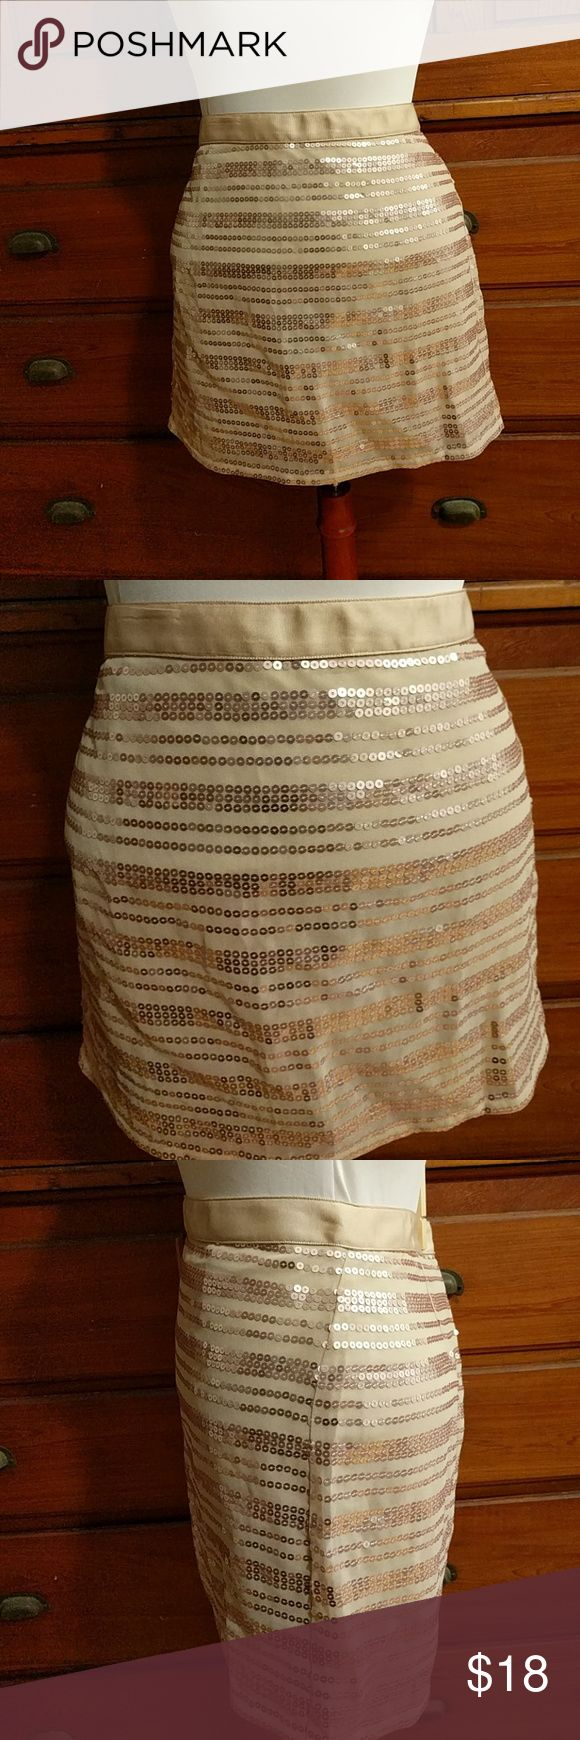 Super cute American Eagle Outfitters sequin skirt Cream, lined, light copper color sequin, size 2 American Eagle Outfitters Skirts Mini